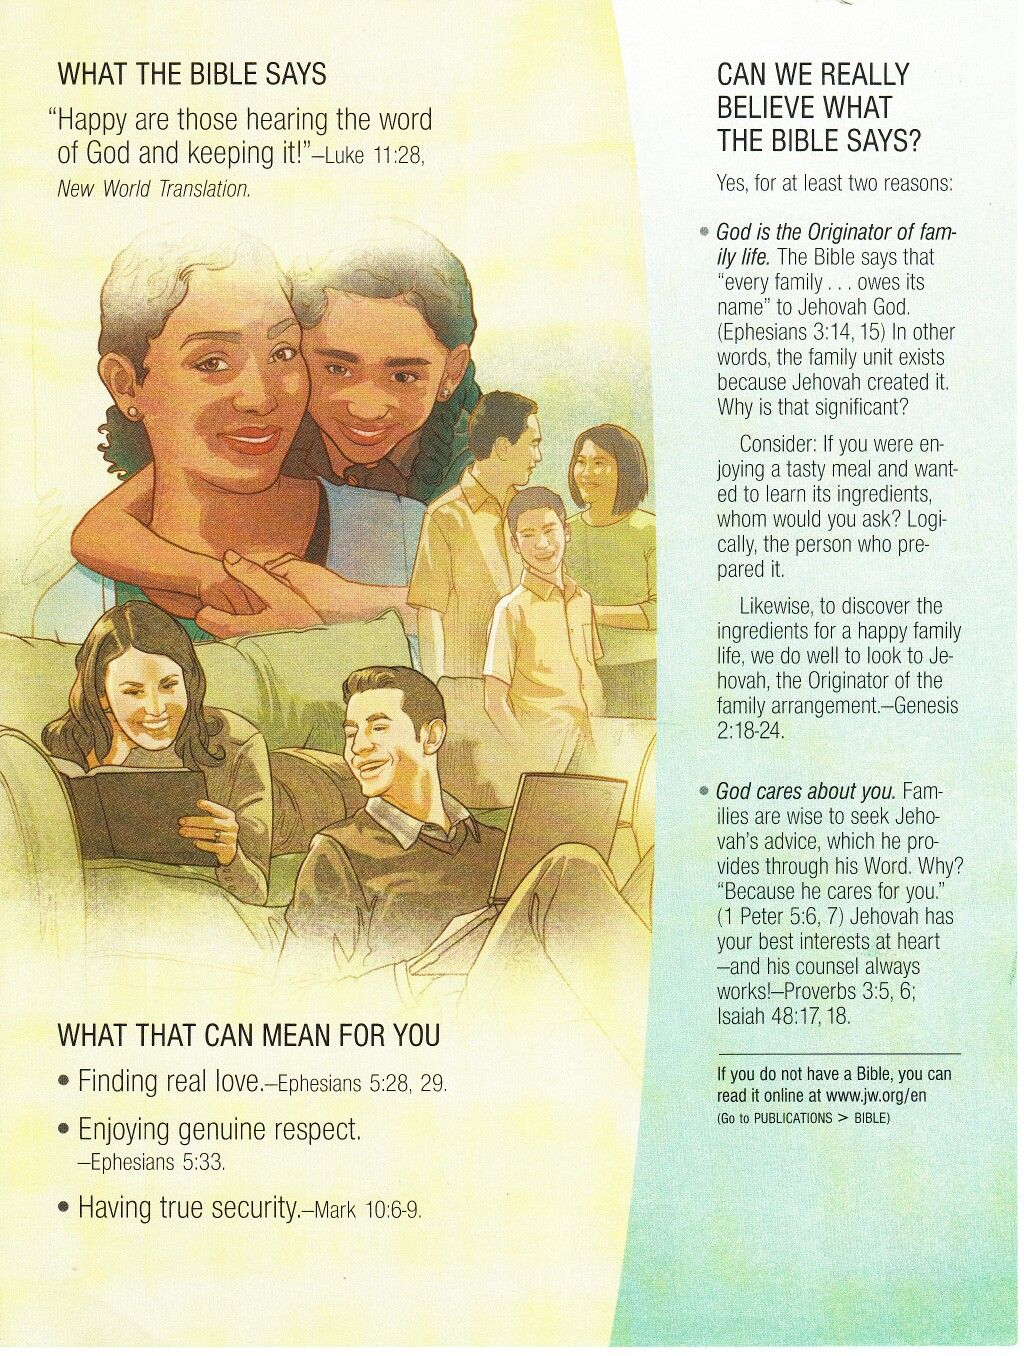 What Is The Key To Happy Family Life Bible Study Notes Free Bible Study Bible Teachings